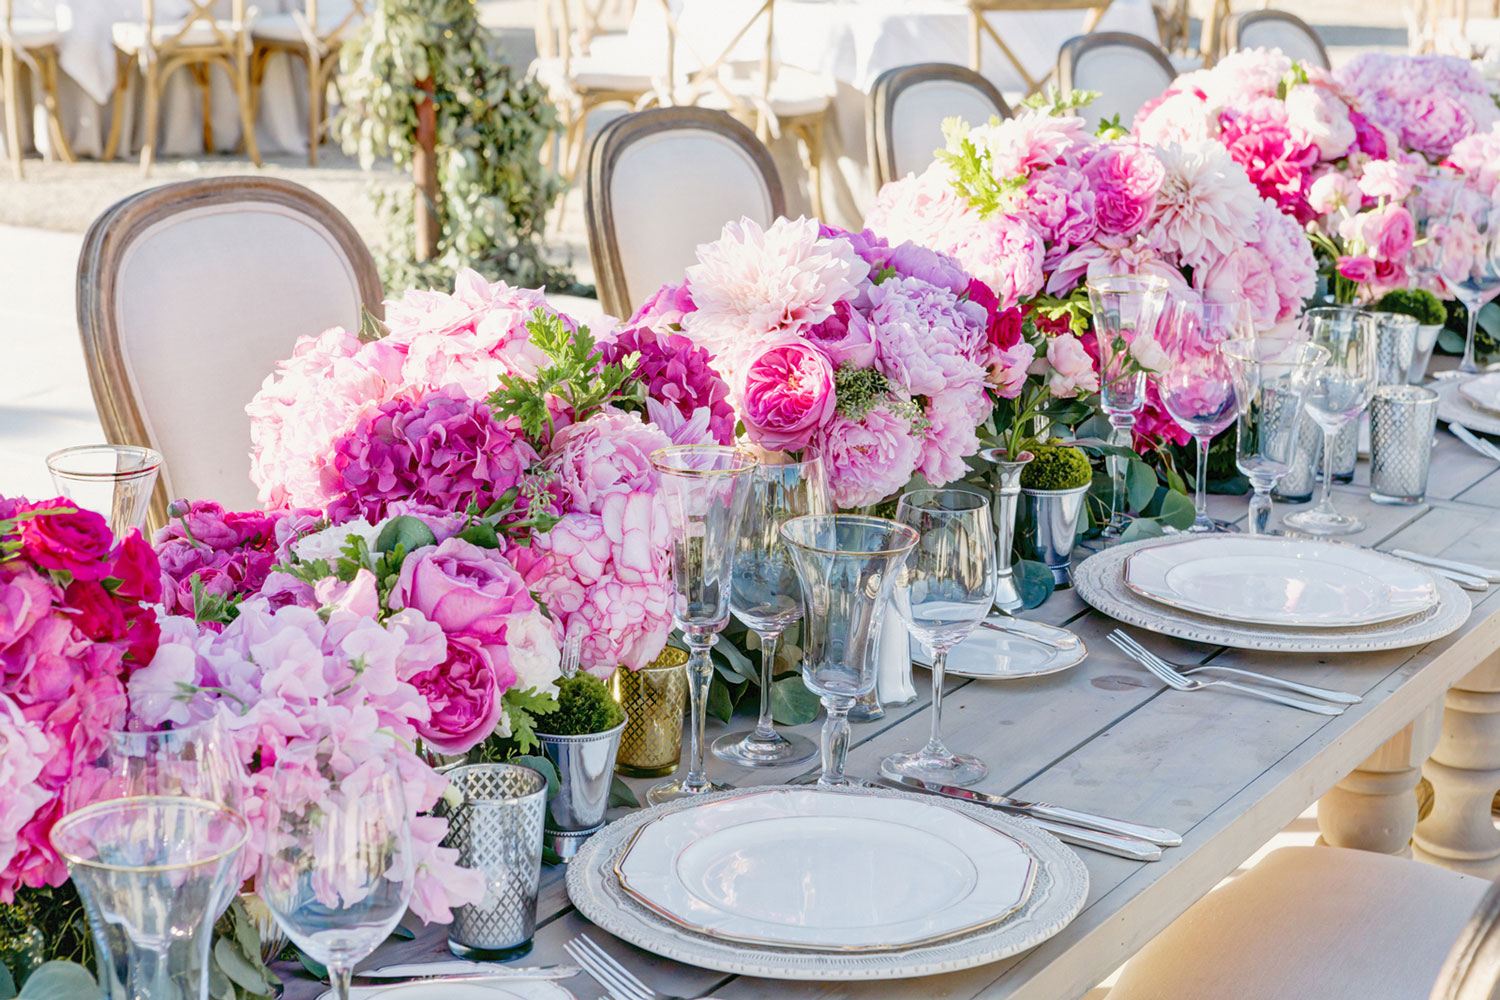 Pink peony and other flowers in centerpiece low runner